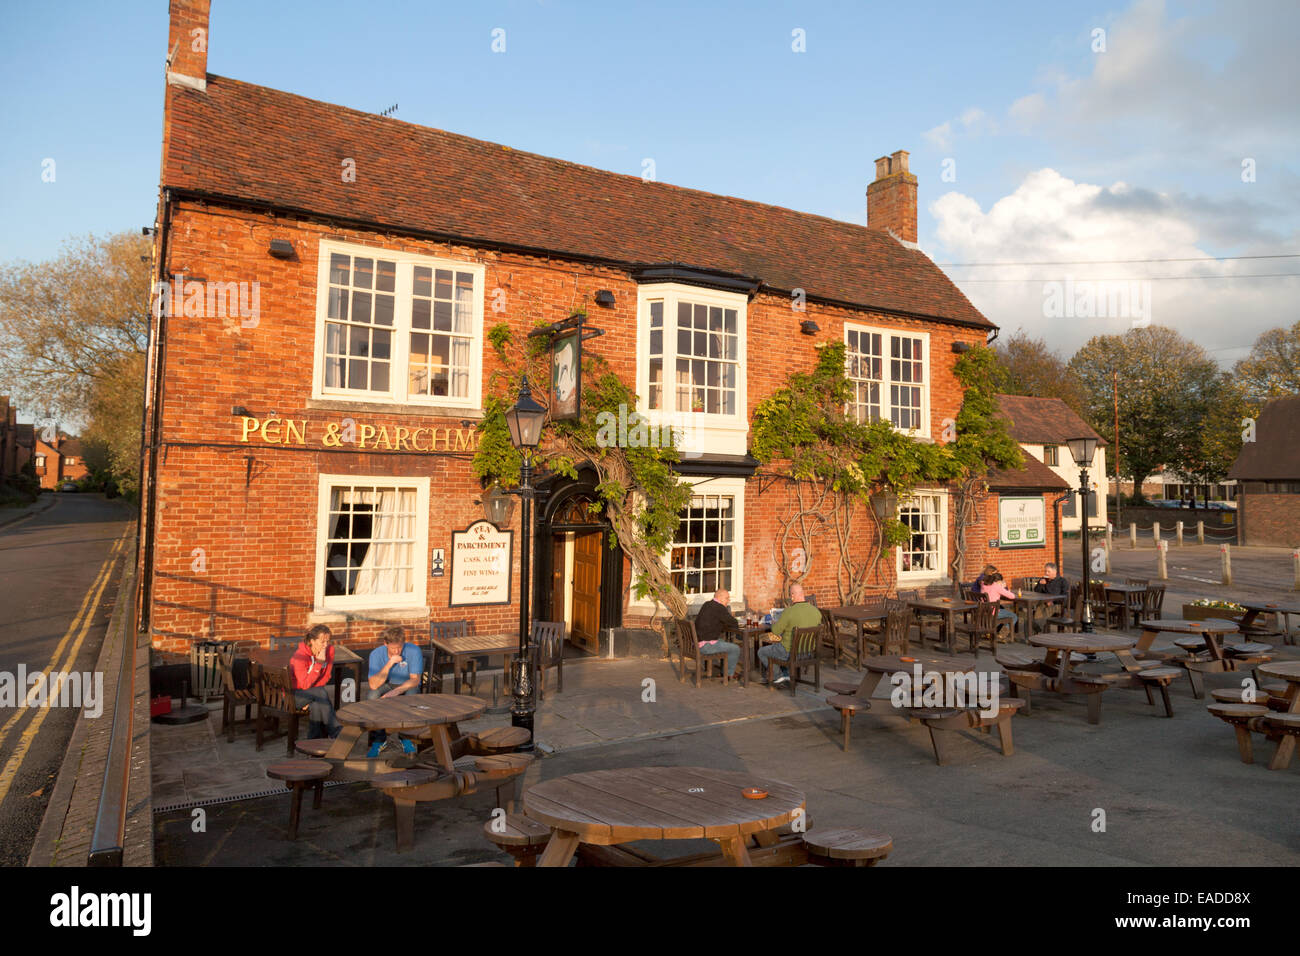 The Pen and Parchment pub, Stratford upon Avon, Warwickshire, UK - Stock Image